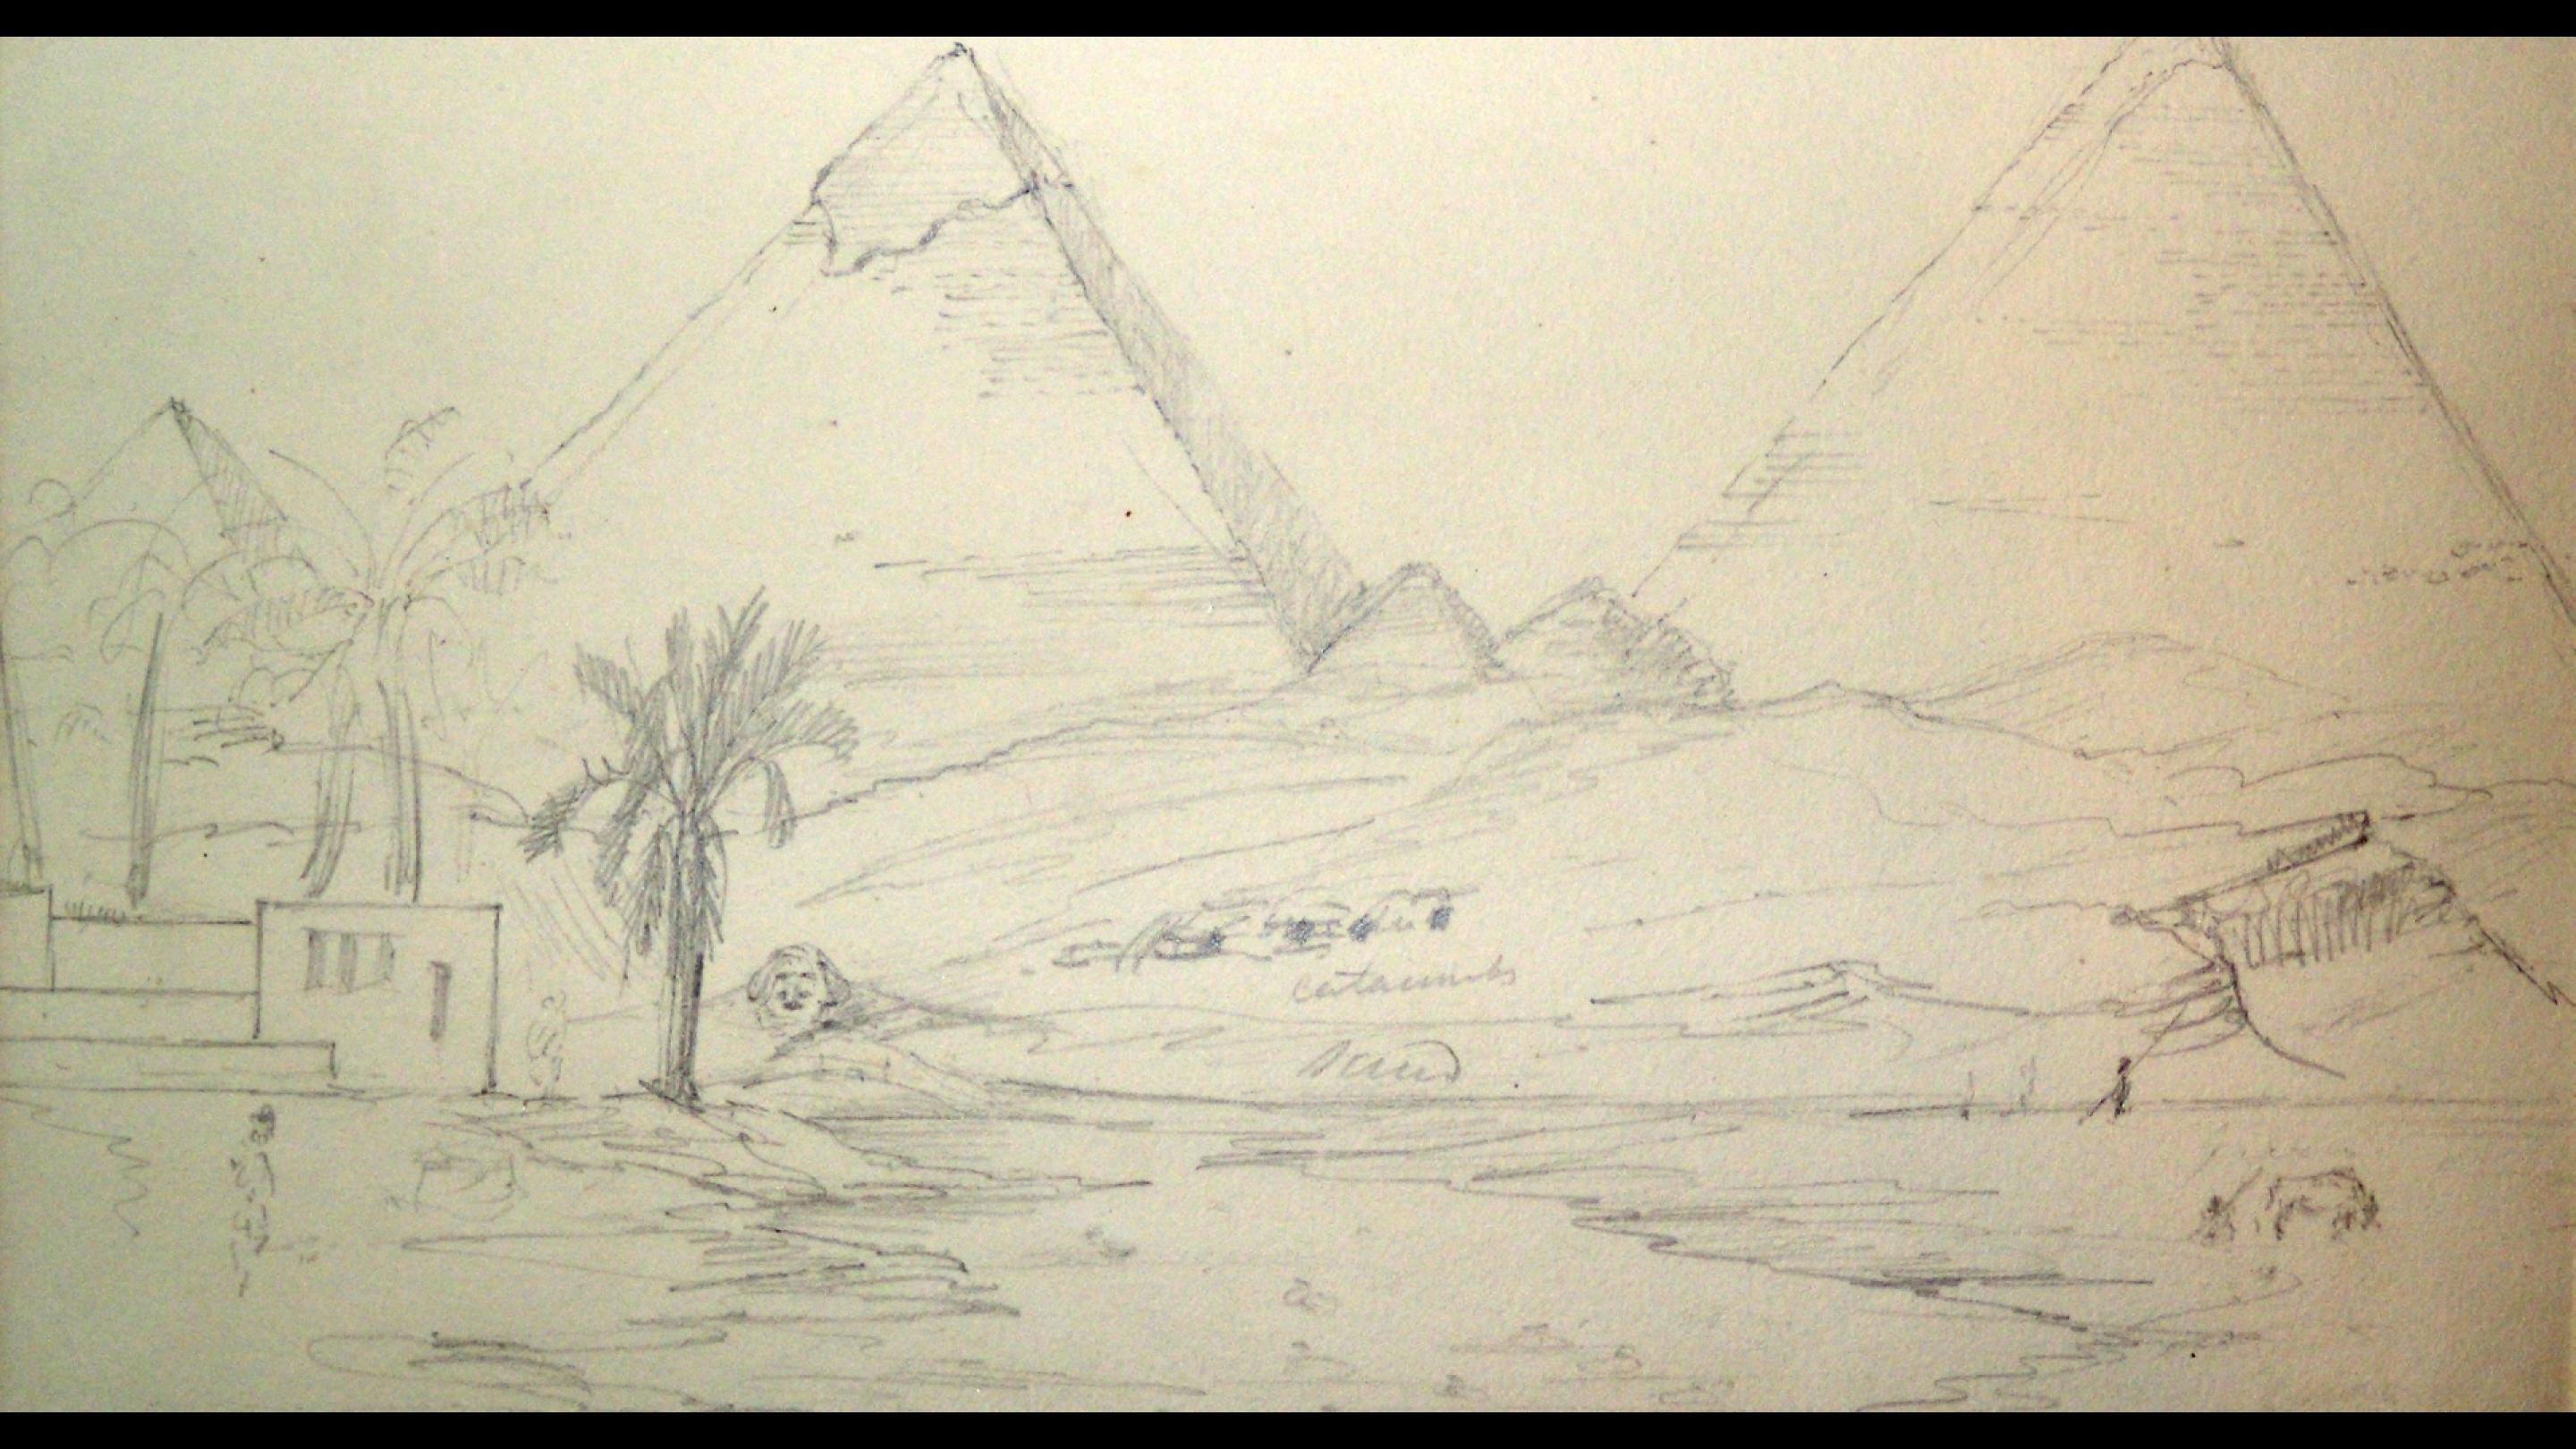 'Pyramids', pencil sketch by Joseph Hooker, 1847